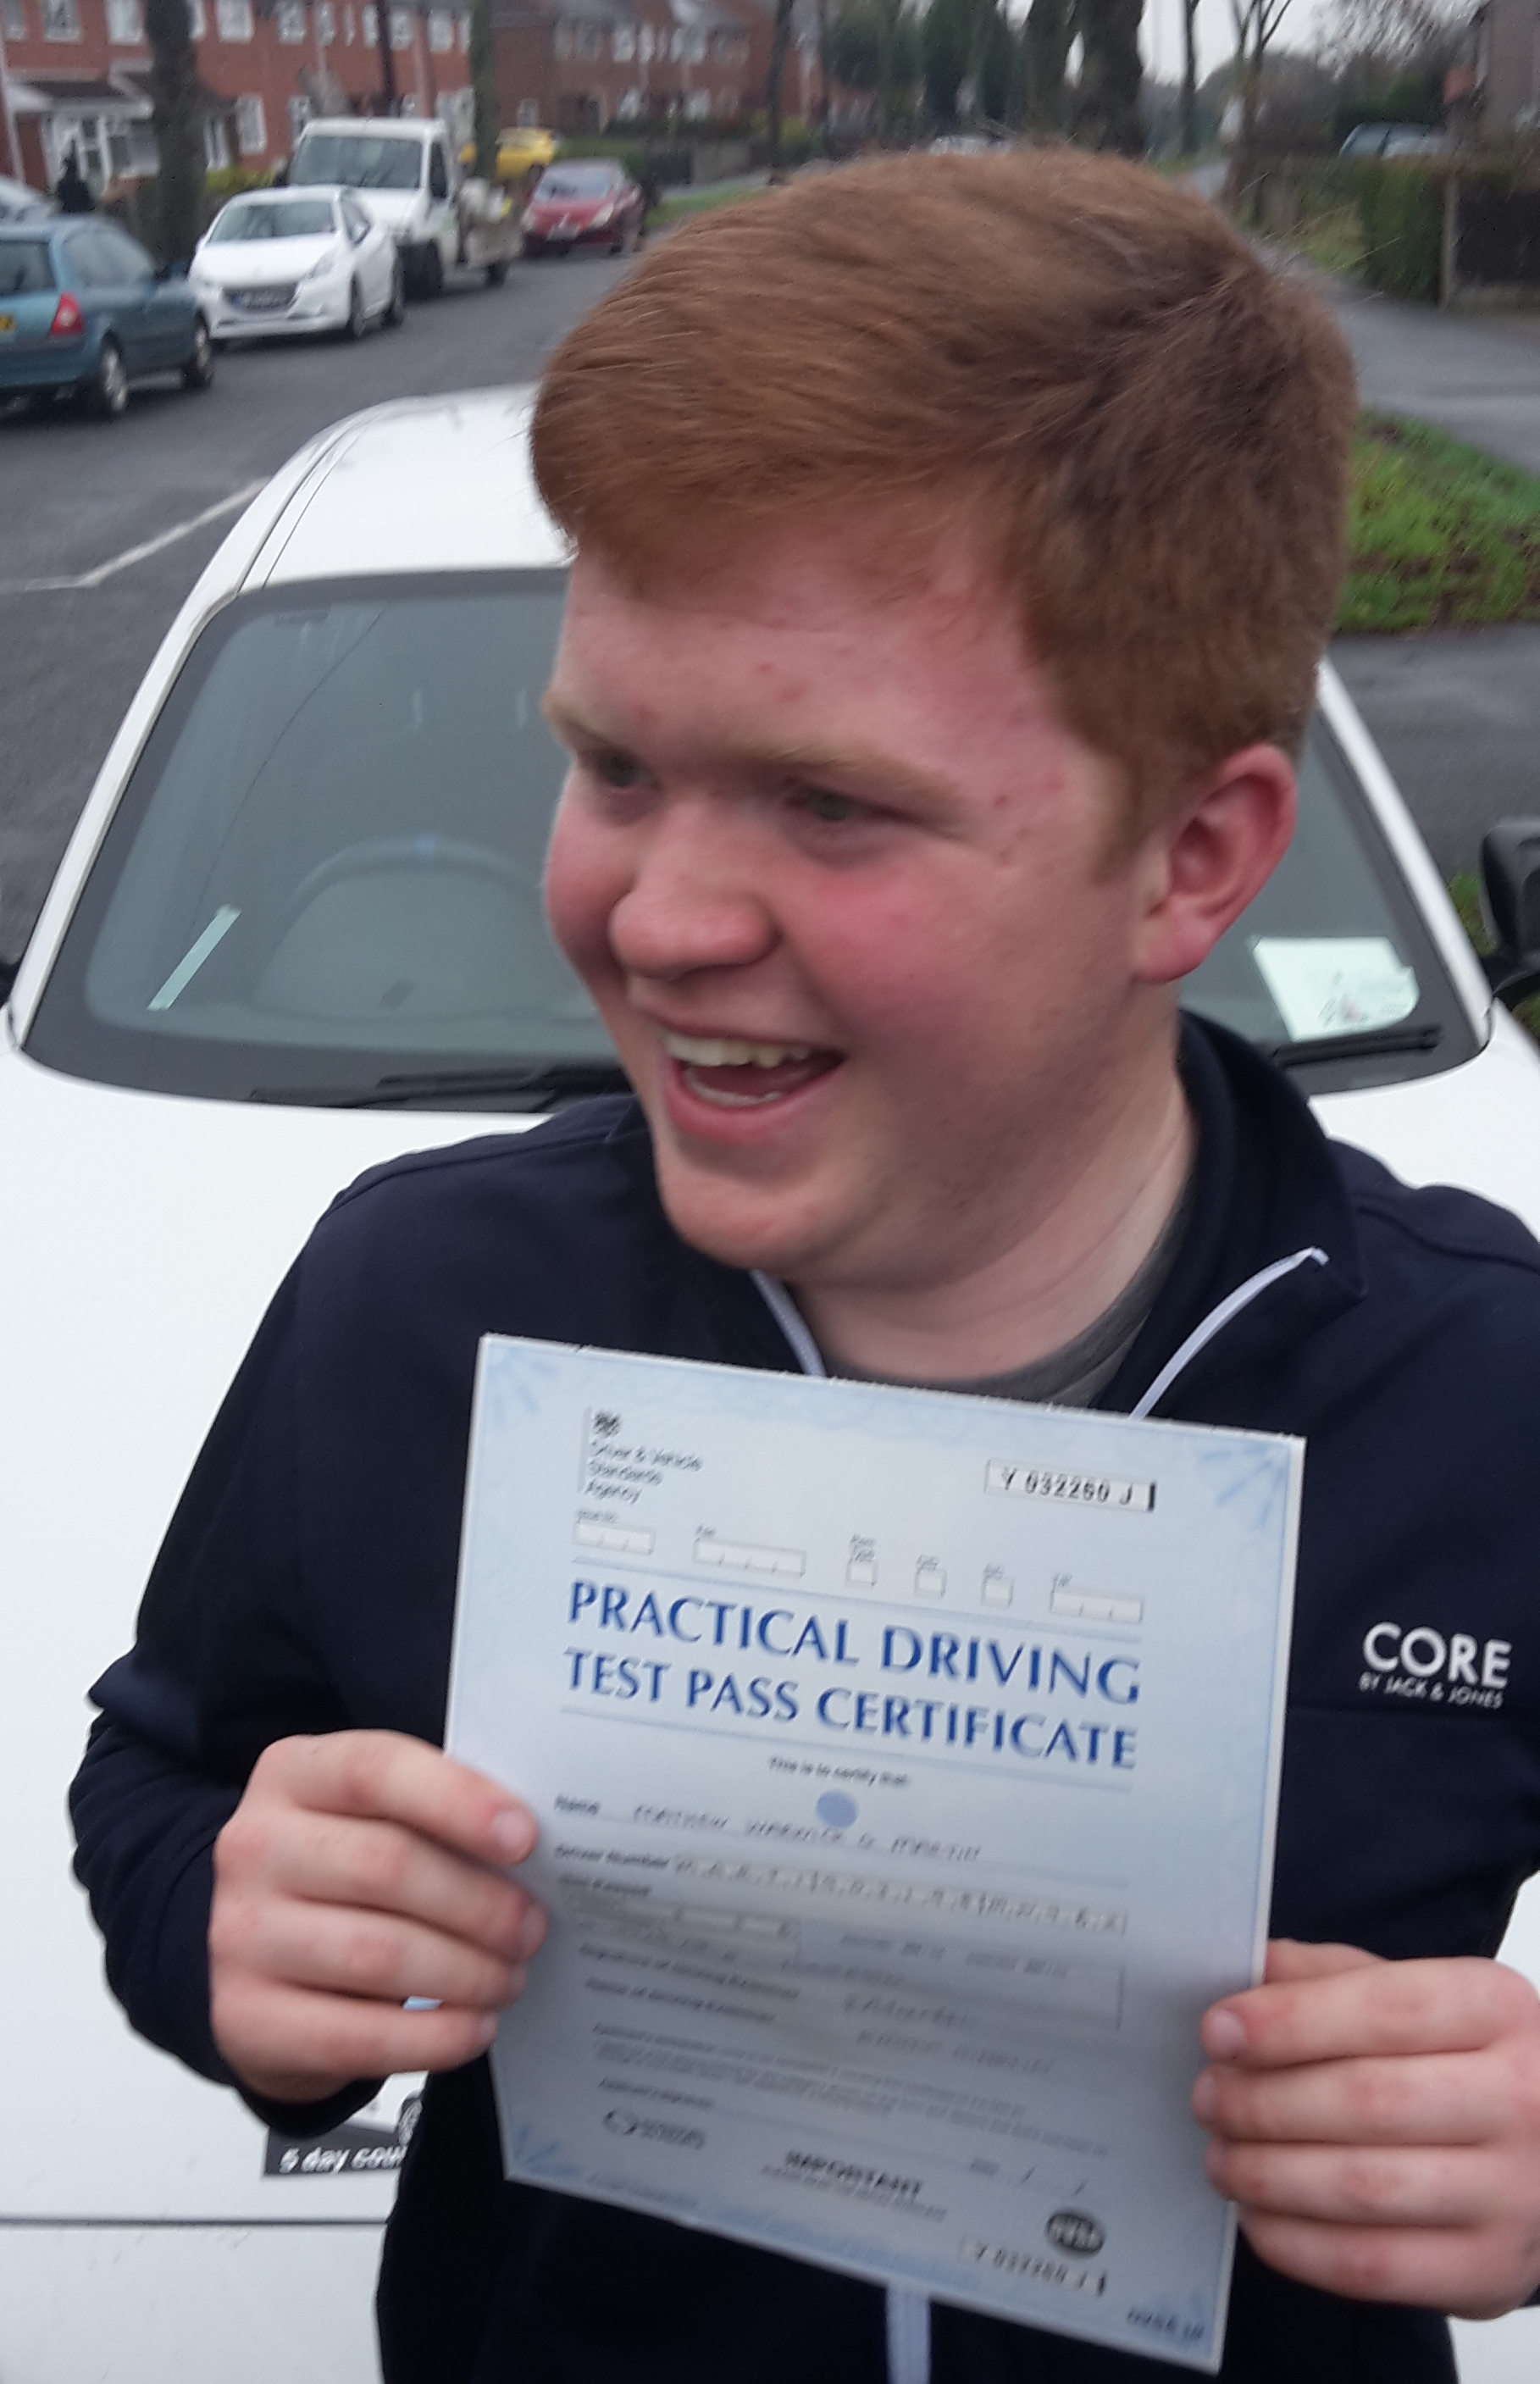 Pass the driving test in Solihull